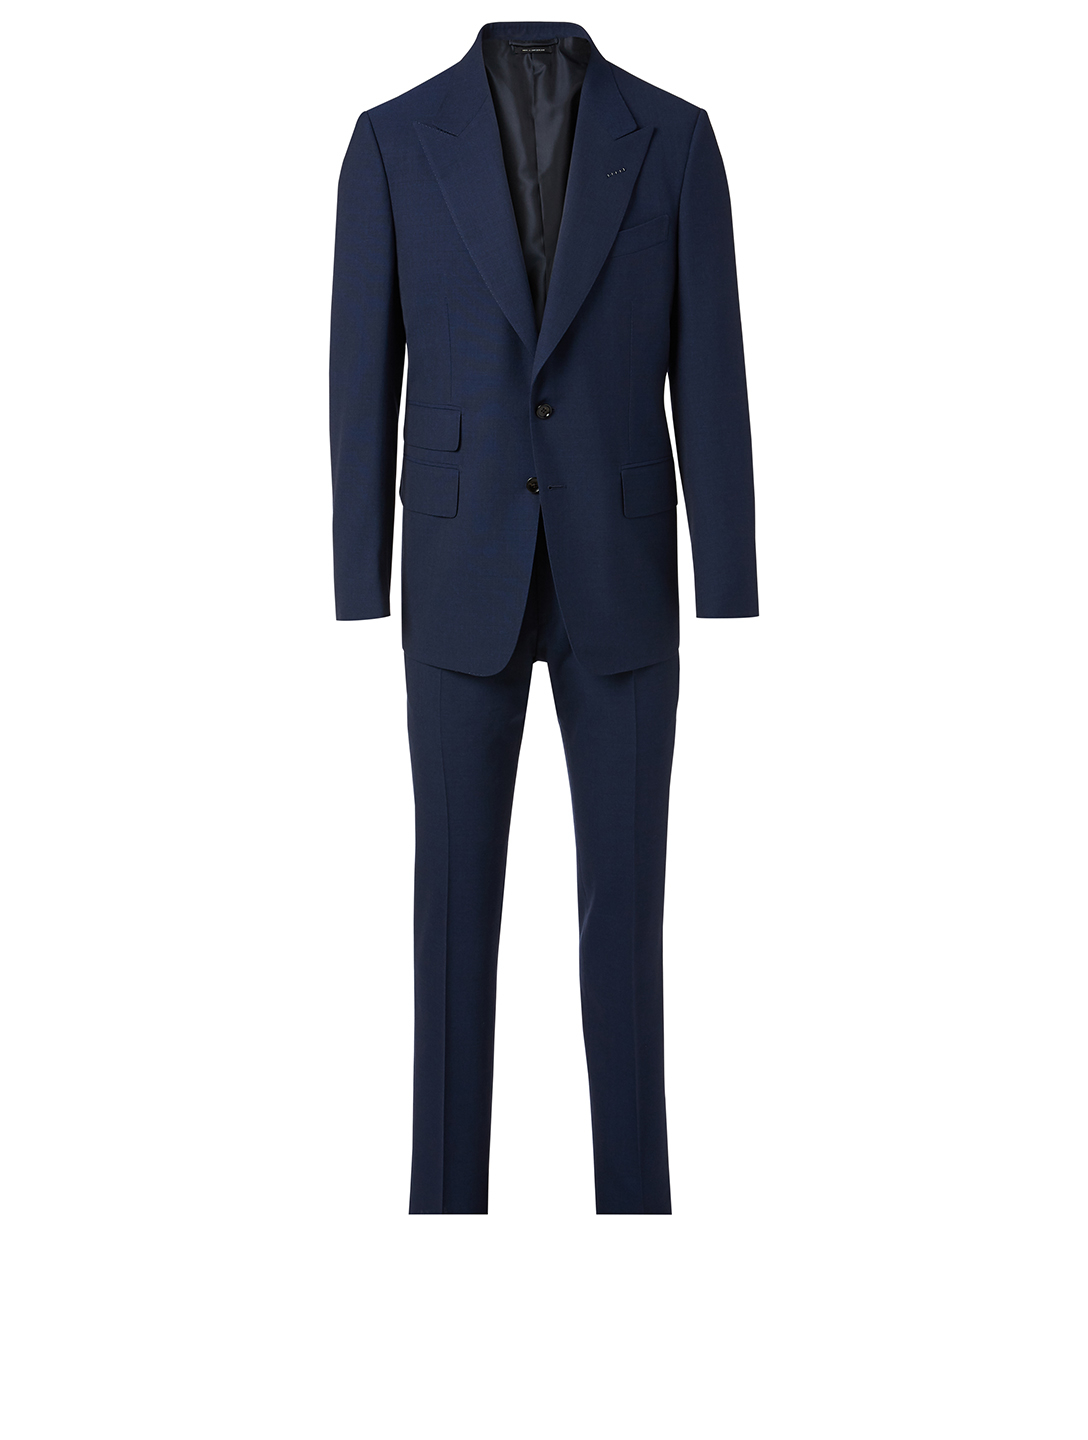 TOM FORD Shelton Wool Two-Piece Suit Men's Blue